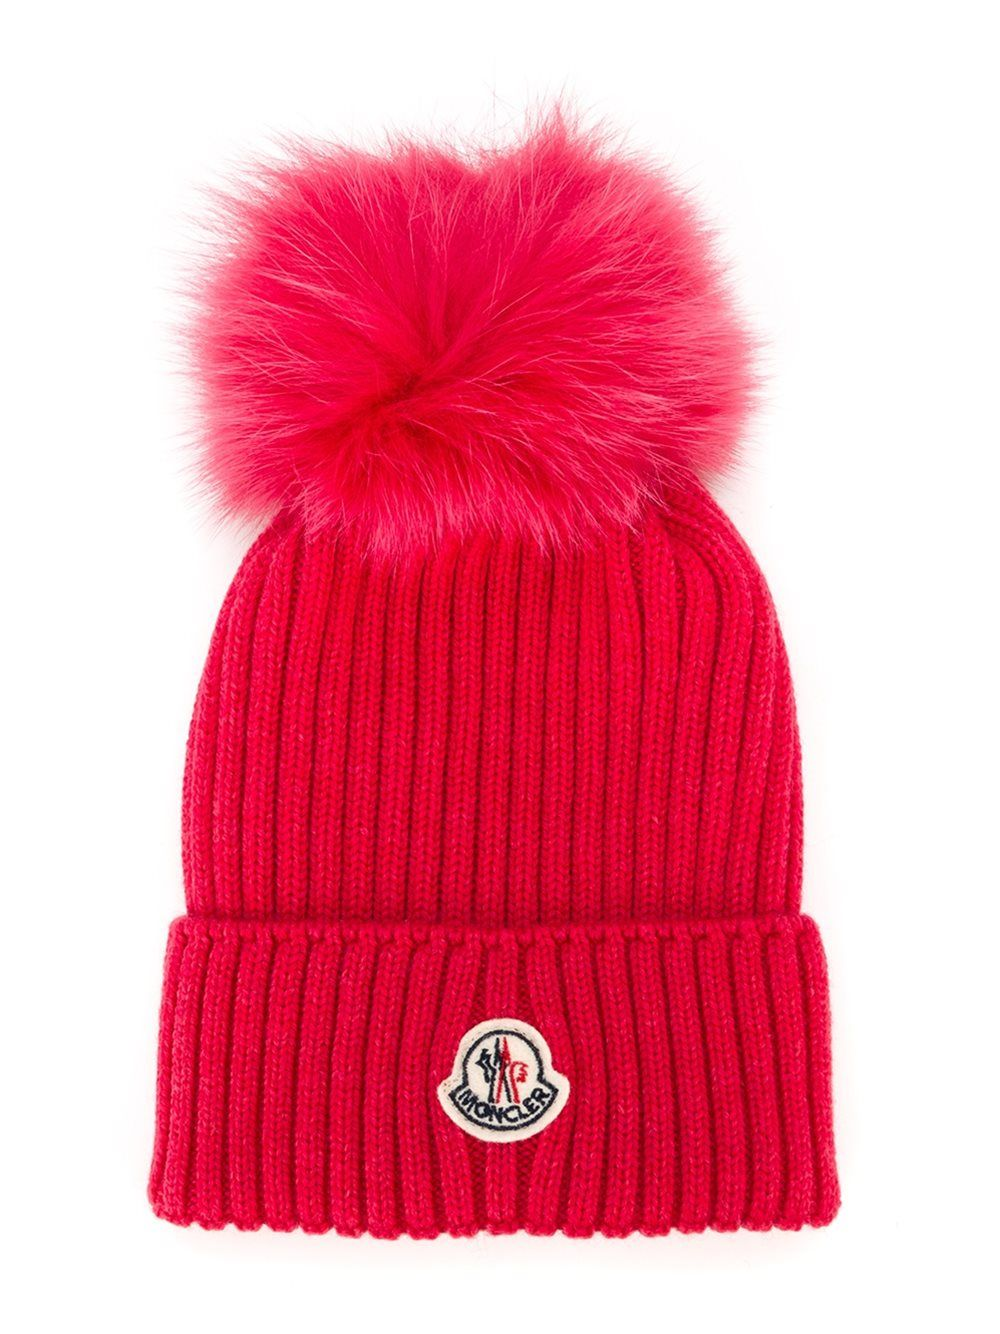 55df743e0807 moncler  kids  beanie  fur  red  pompom  hats  new www.jofre.eu ...